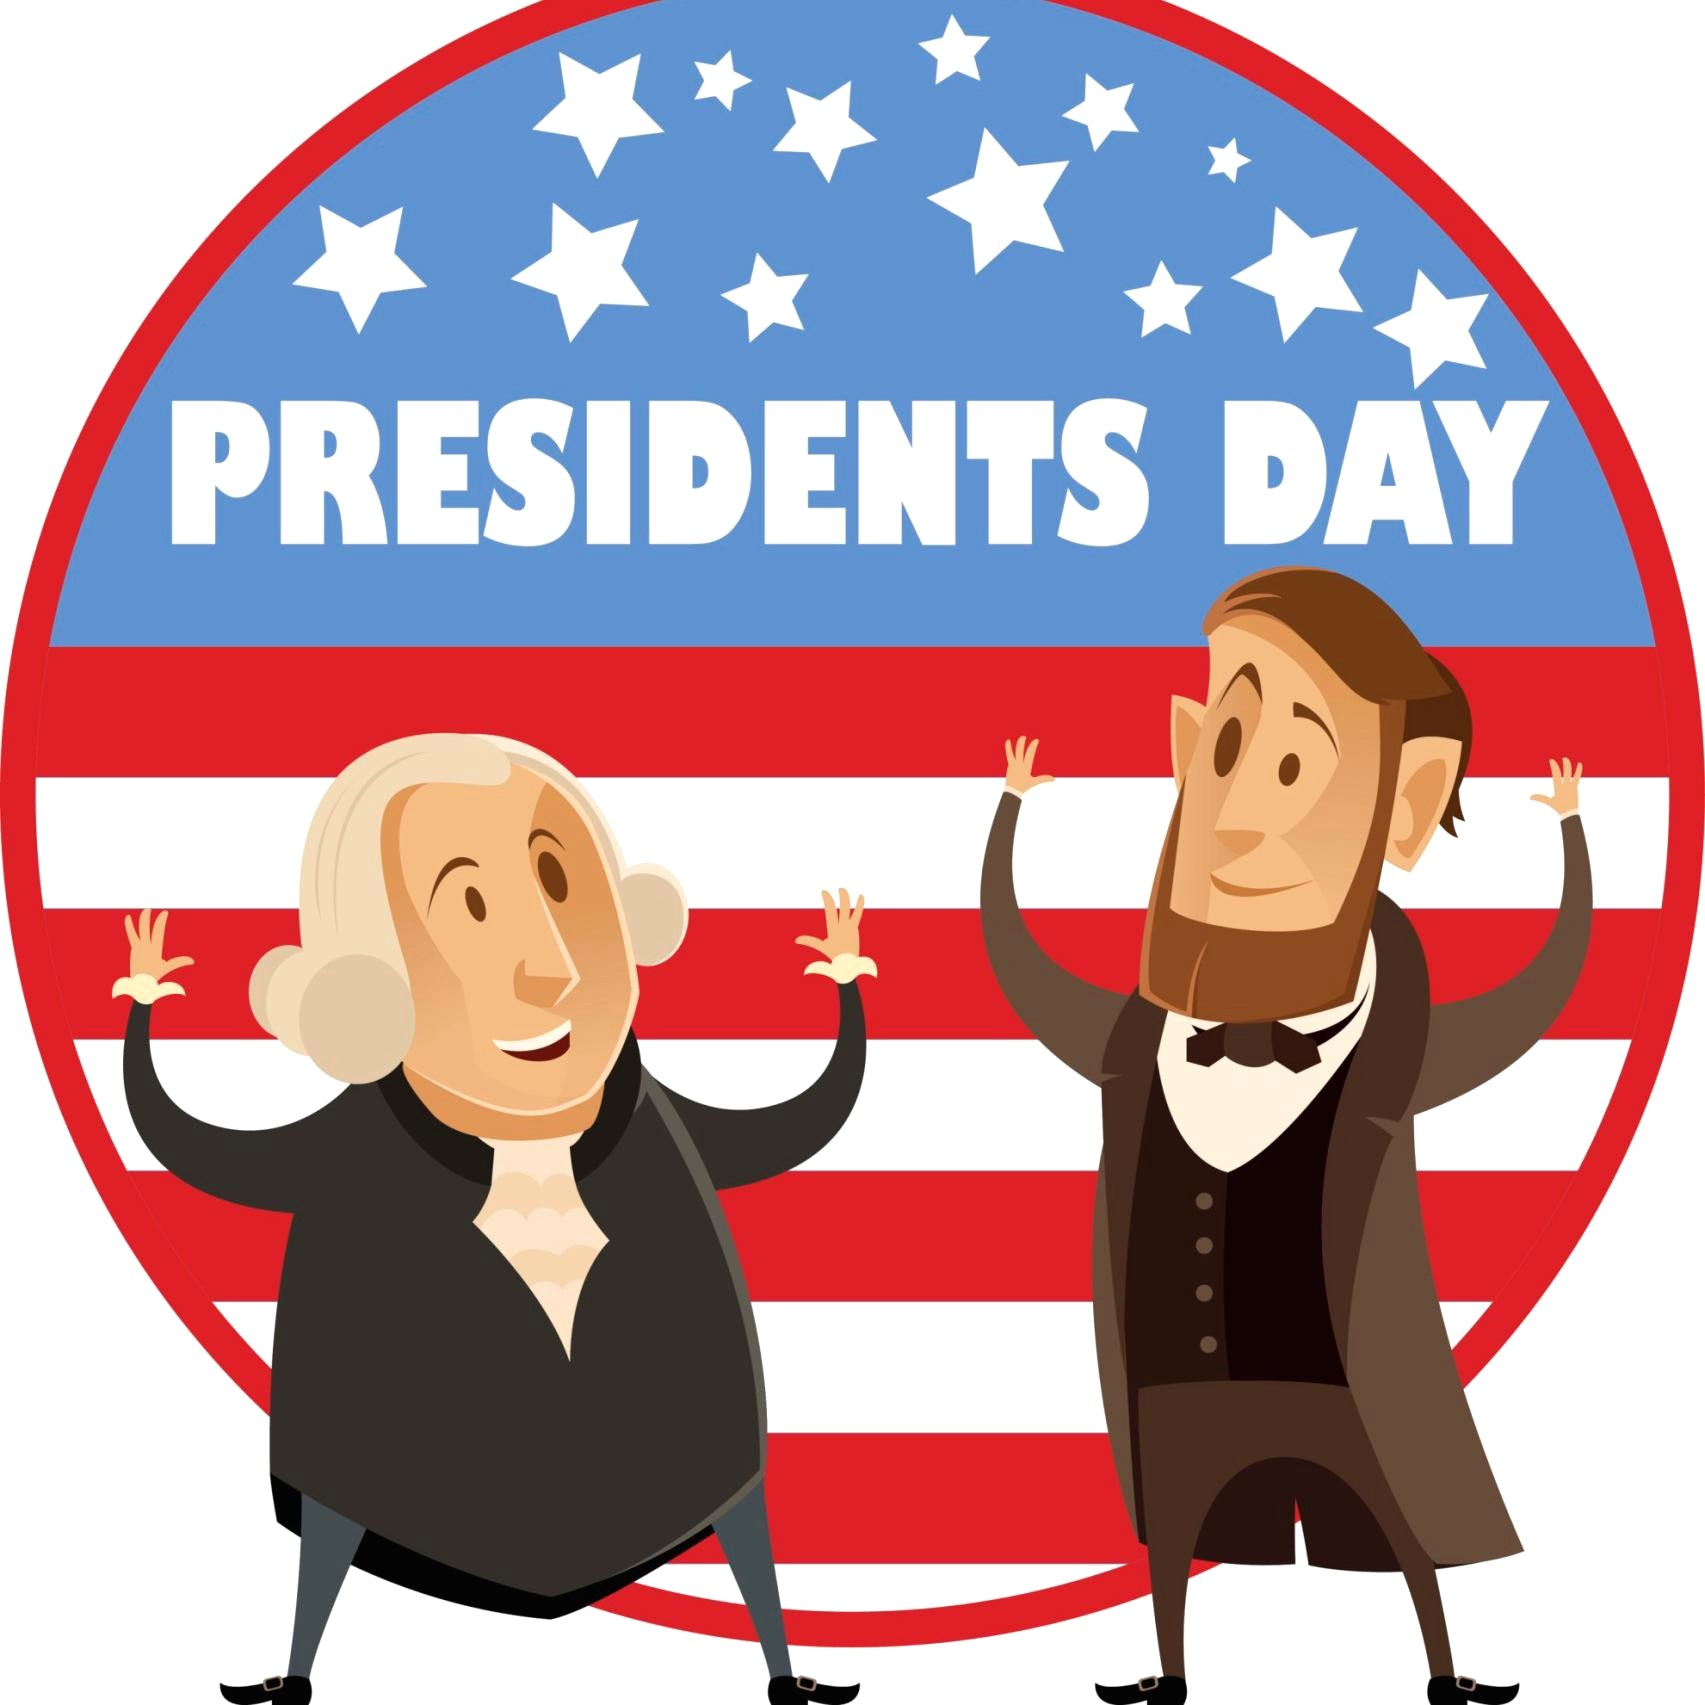 Free presidents day clipart picture black and white library Free Presidents Day Clipart (92+ images in Collection) Page 1 picture black and white library